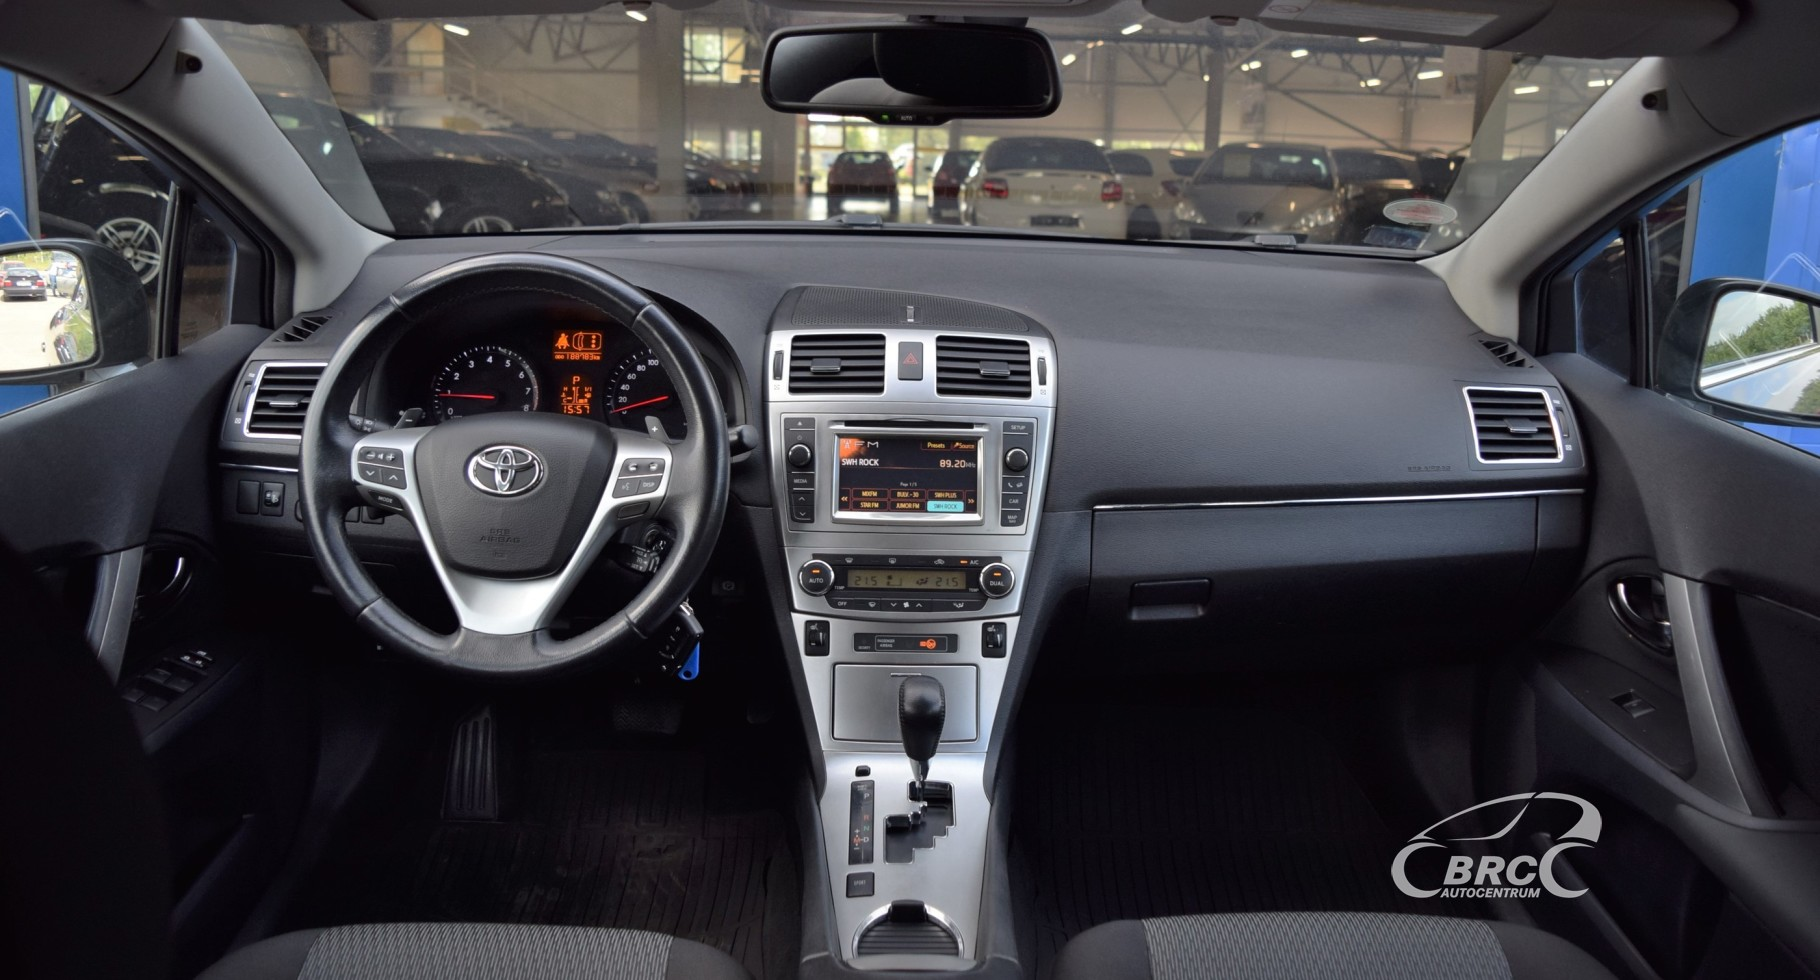 Toyota Avensis Valvematic Linea Sol A/T